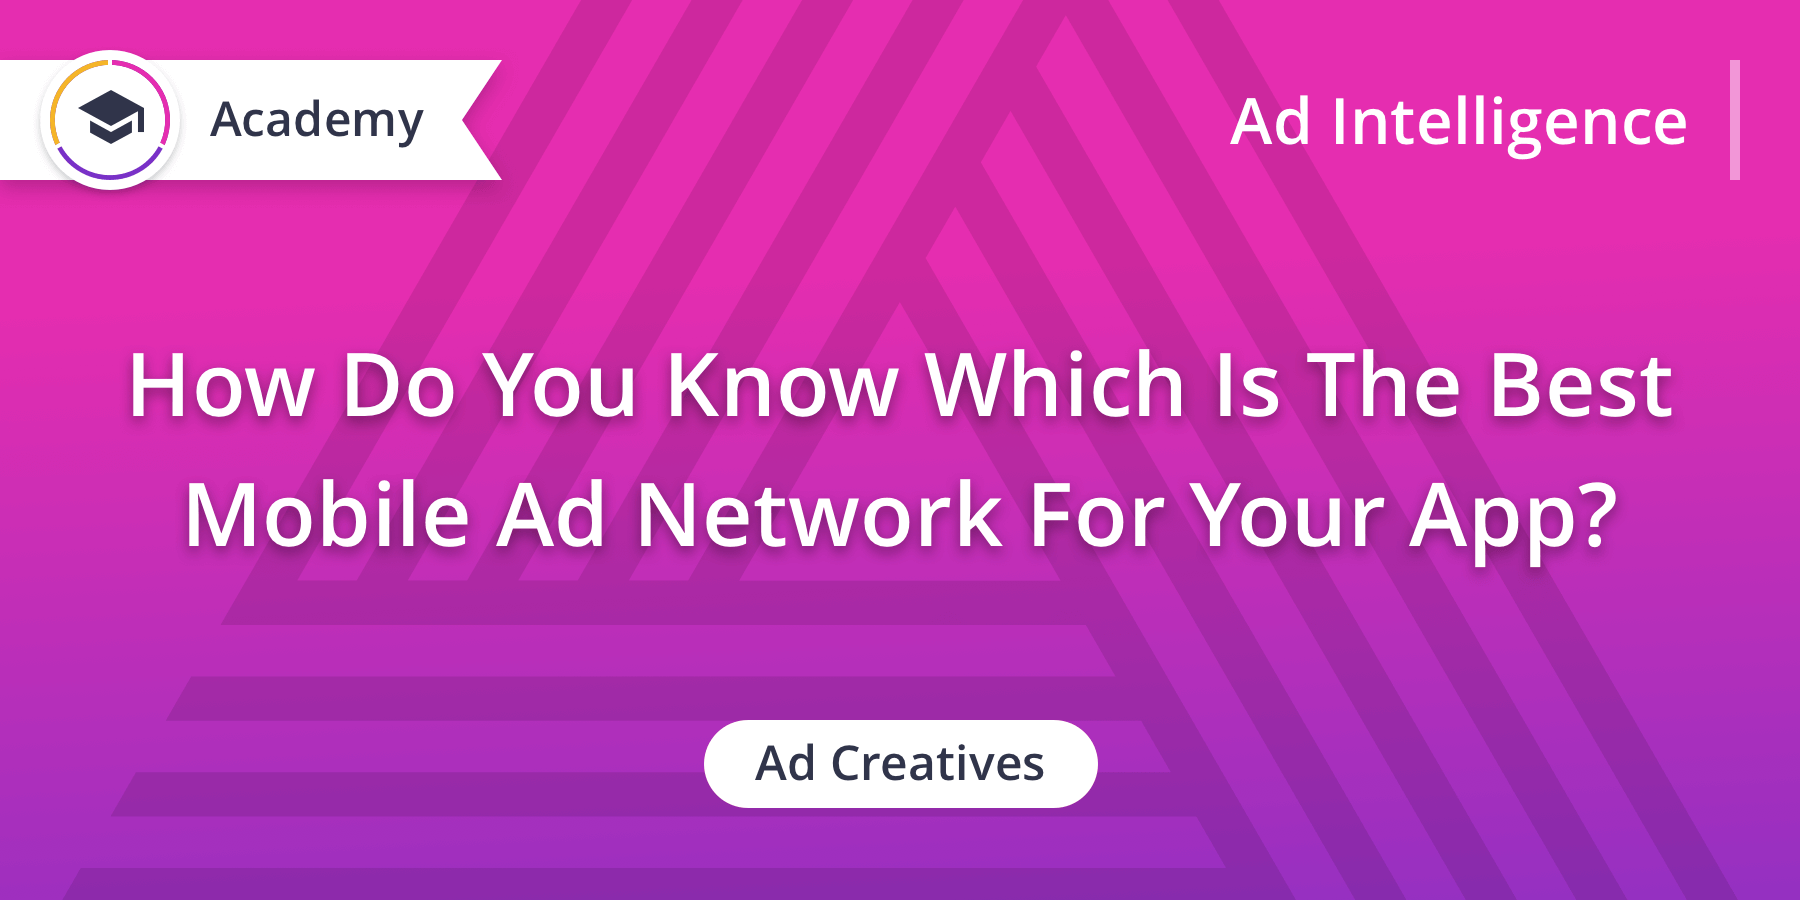 How Do You Know Which Is The Best Mobile Ad Network For Your App?